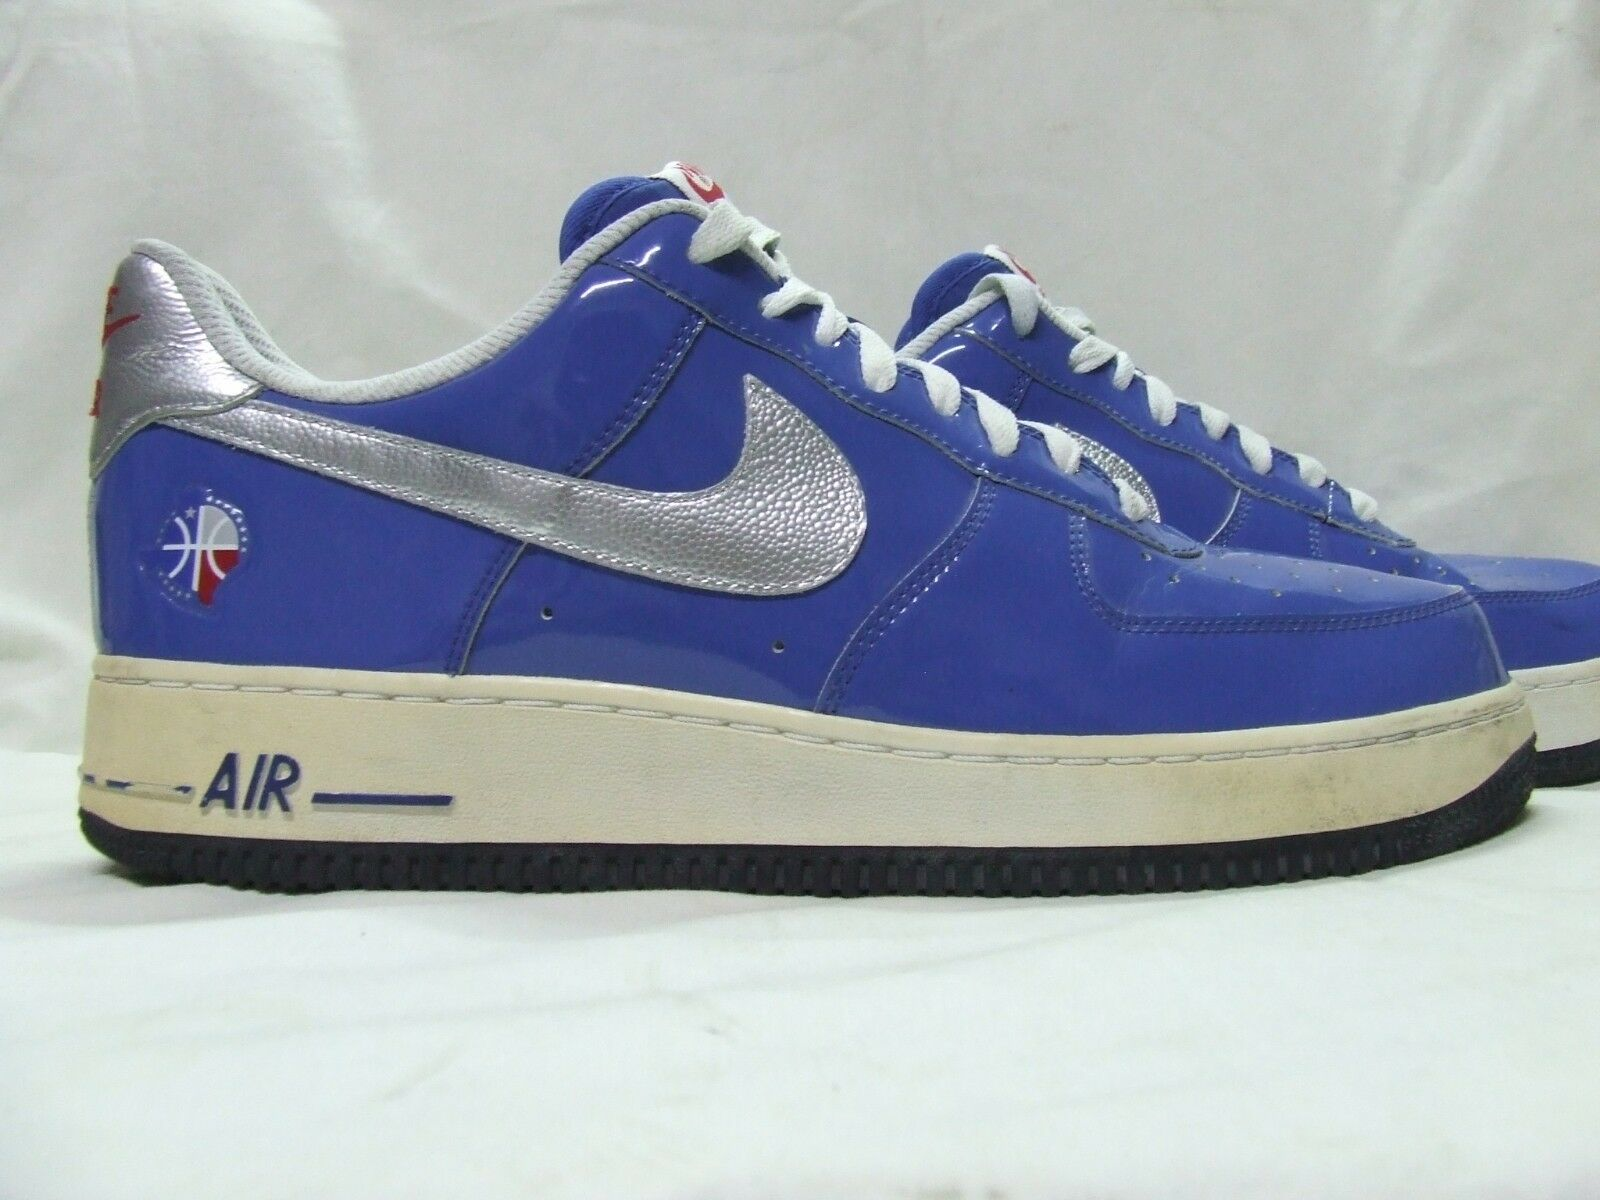 Schuhe Schuhe UOMO NIKE AIR 2010 FORCE I ALL STAR GAME 2010 AIR tg. 46 7e8c1c